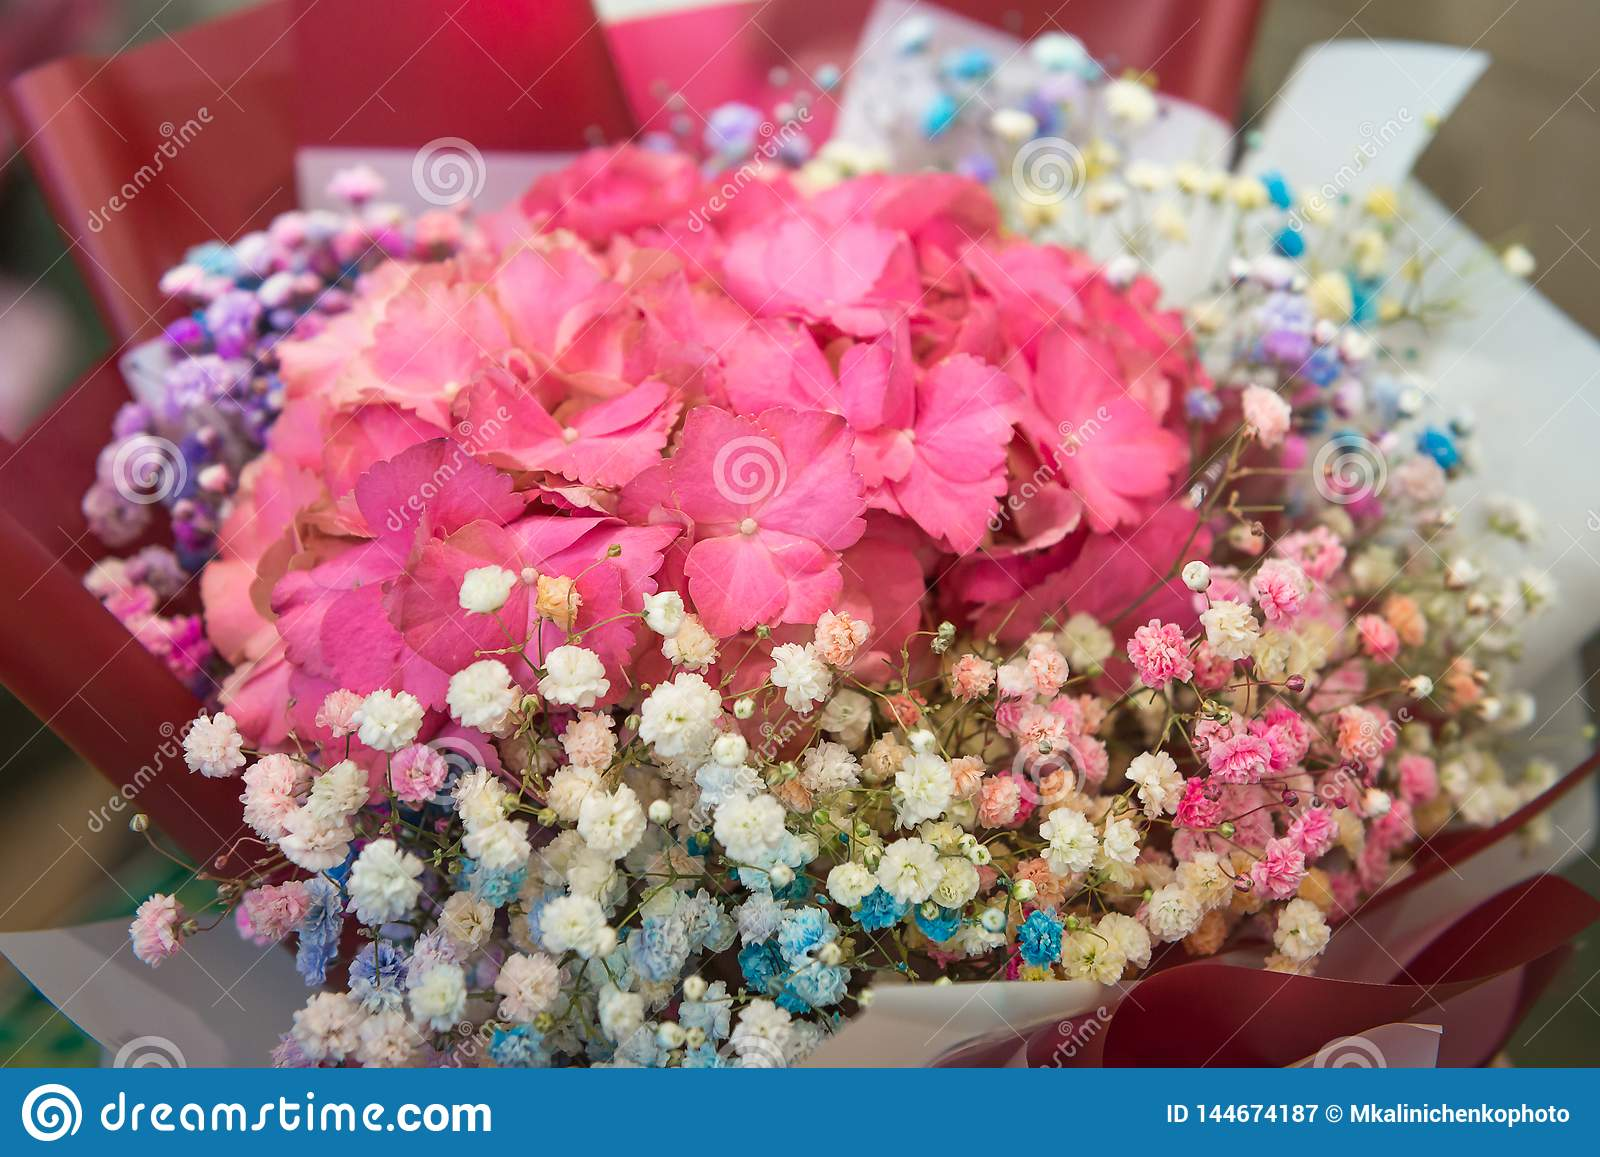 Festive delicate bouquet of pink hydrangea and colorful gypsophila, selective focus. Floristics and bouquets, greetings and